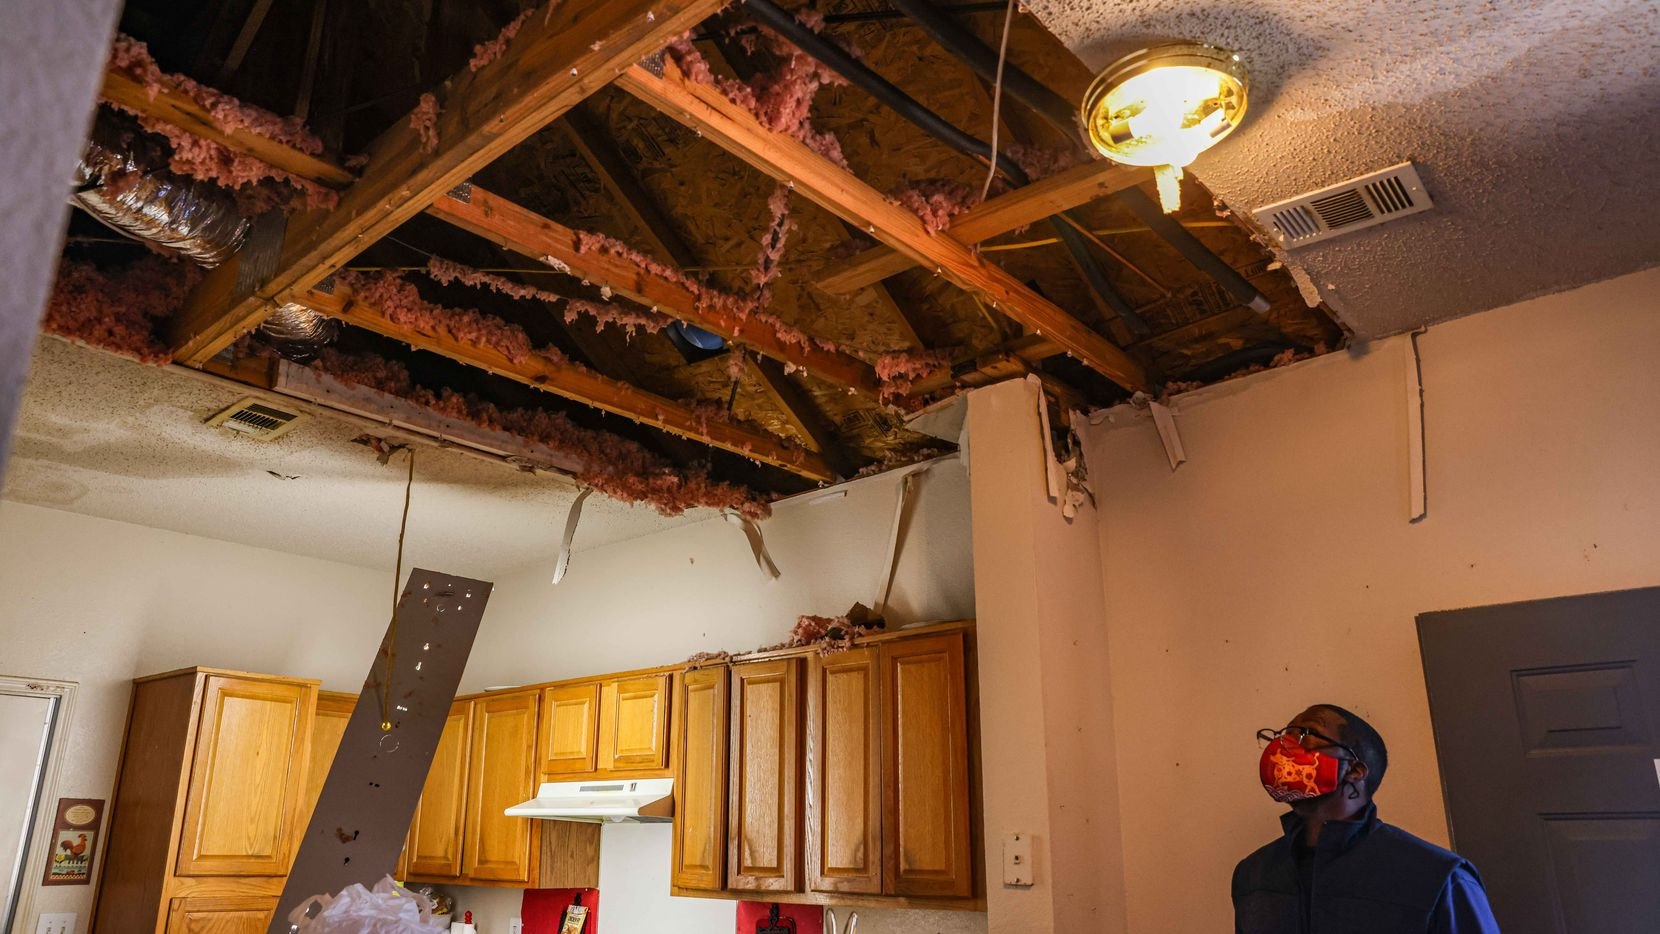 Benny Henderson, 53, takes a look at his mother apartment ceiling at Westmoreland Heights in Dallas on Saturday, February 20, 2021, where it collapsed over the kitchen due to water damage after the snow storm Uri hit Dallas this week. (Lola Gomez/The Dallas Morning News)